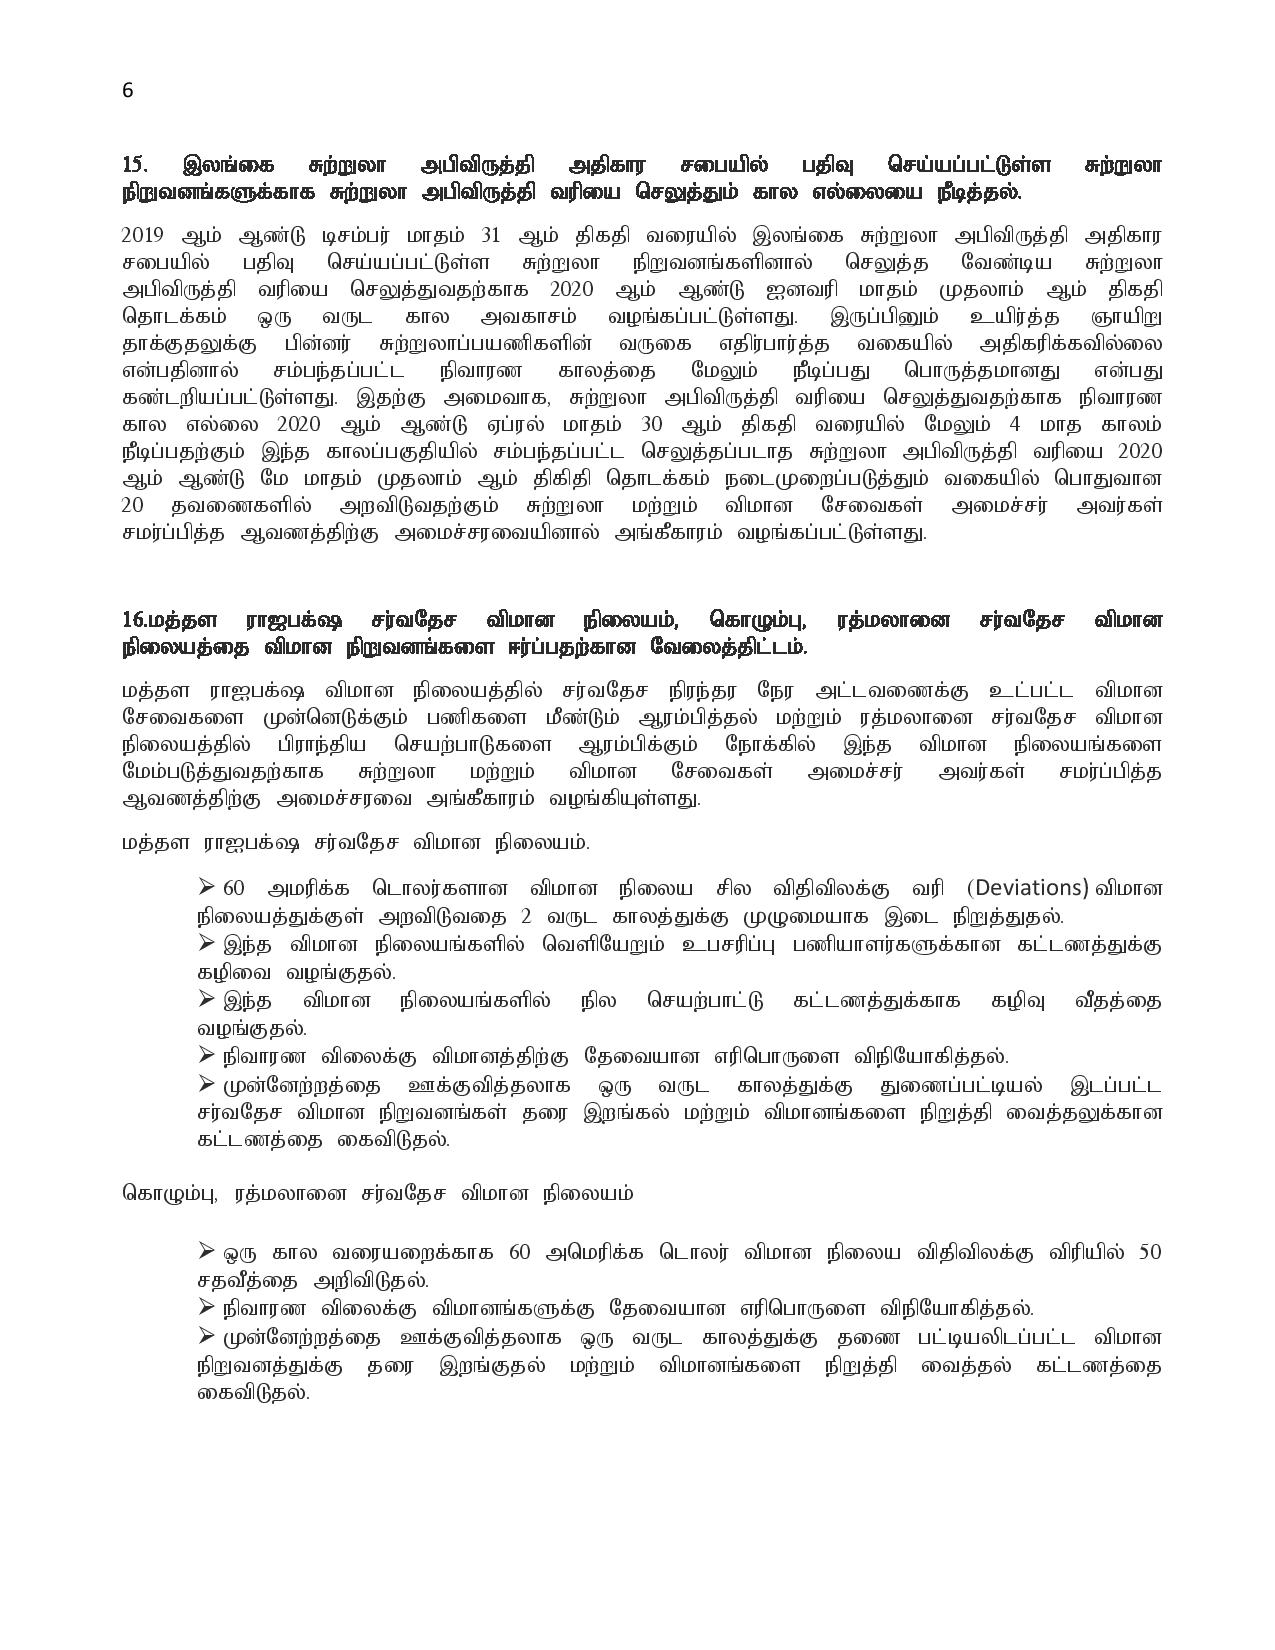 2020.02.27 cabinet tamil page 006